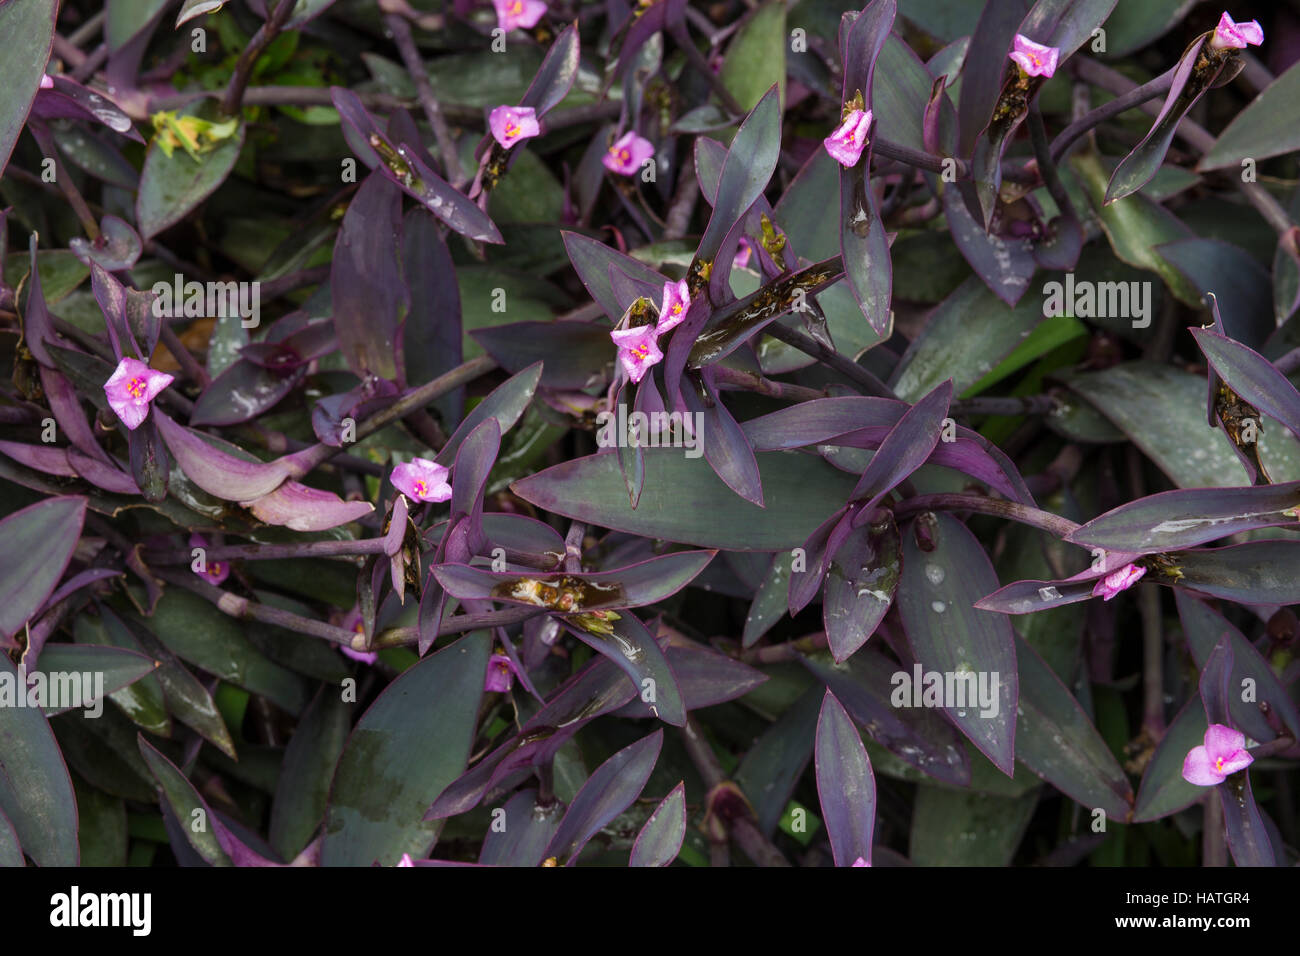 Wandering jew ground cover - Stock Image